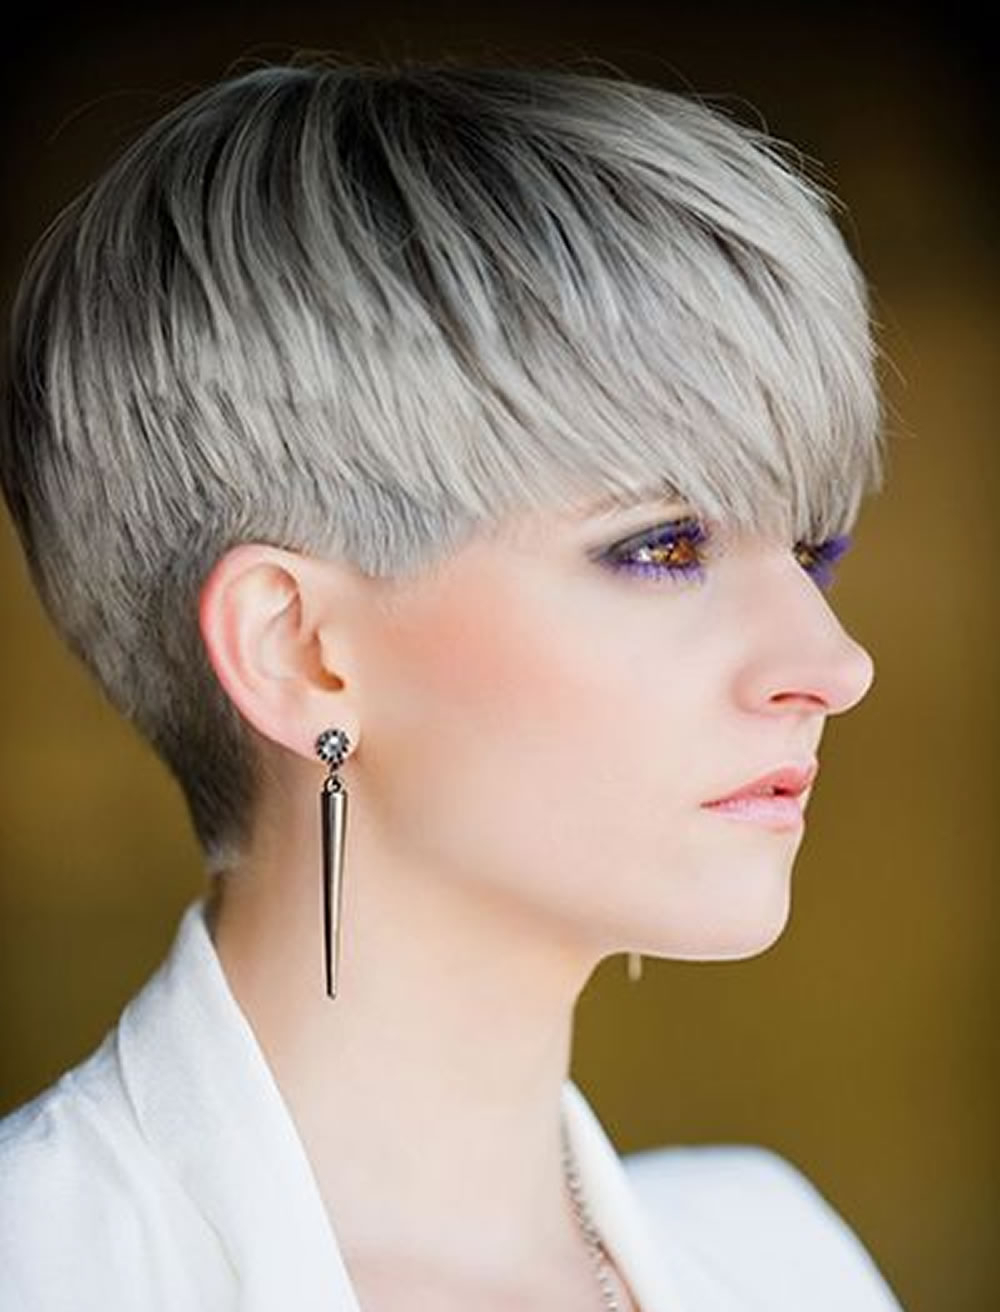 Trend Short Haircuts For 20182019 And Best Pixie Hairstyles | Haircuts Intended For Short Hairstyles For Women With Gray Hair (View 22 of 25)